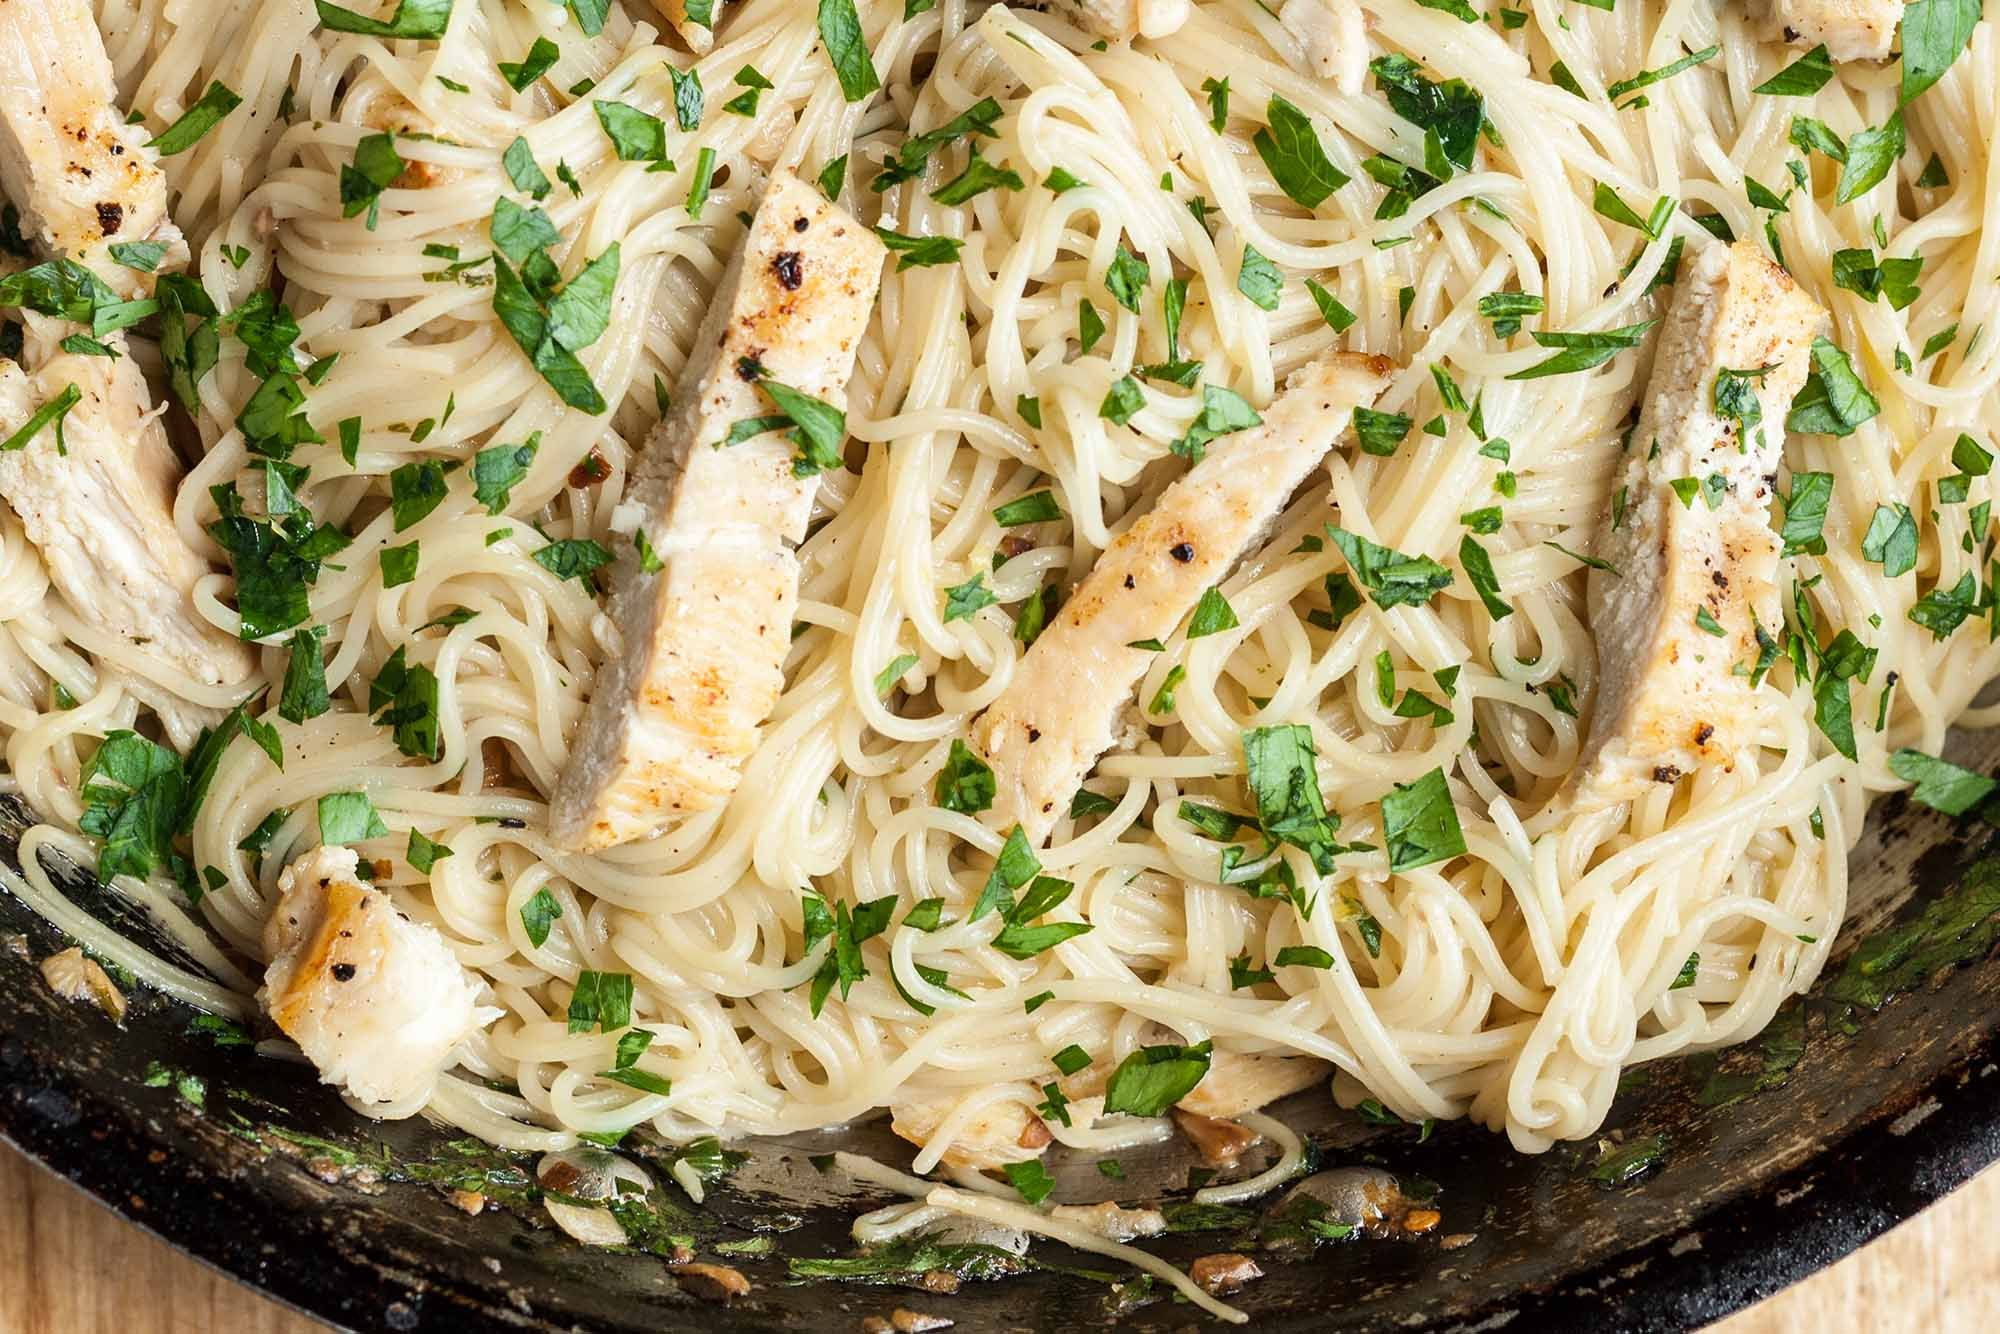 Chicken Scampi With Angel Hair Pasta Recipe Chicken Scampi Angel Hair Pasta Recipes Angel Hair Pasta Recipes Chicken